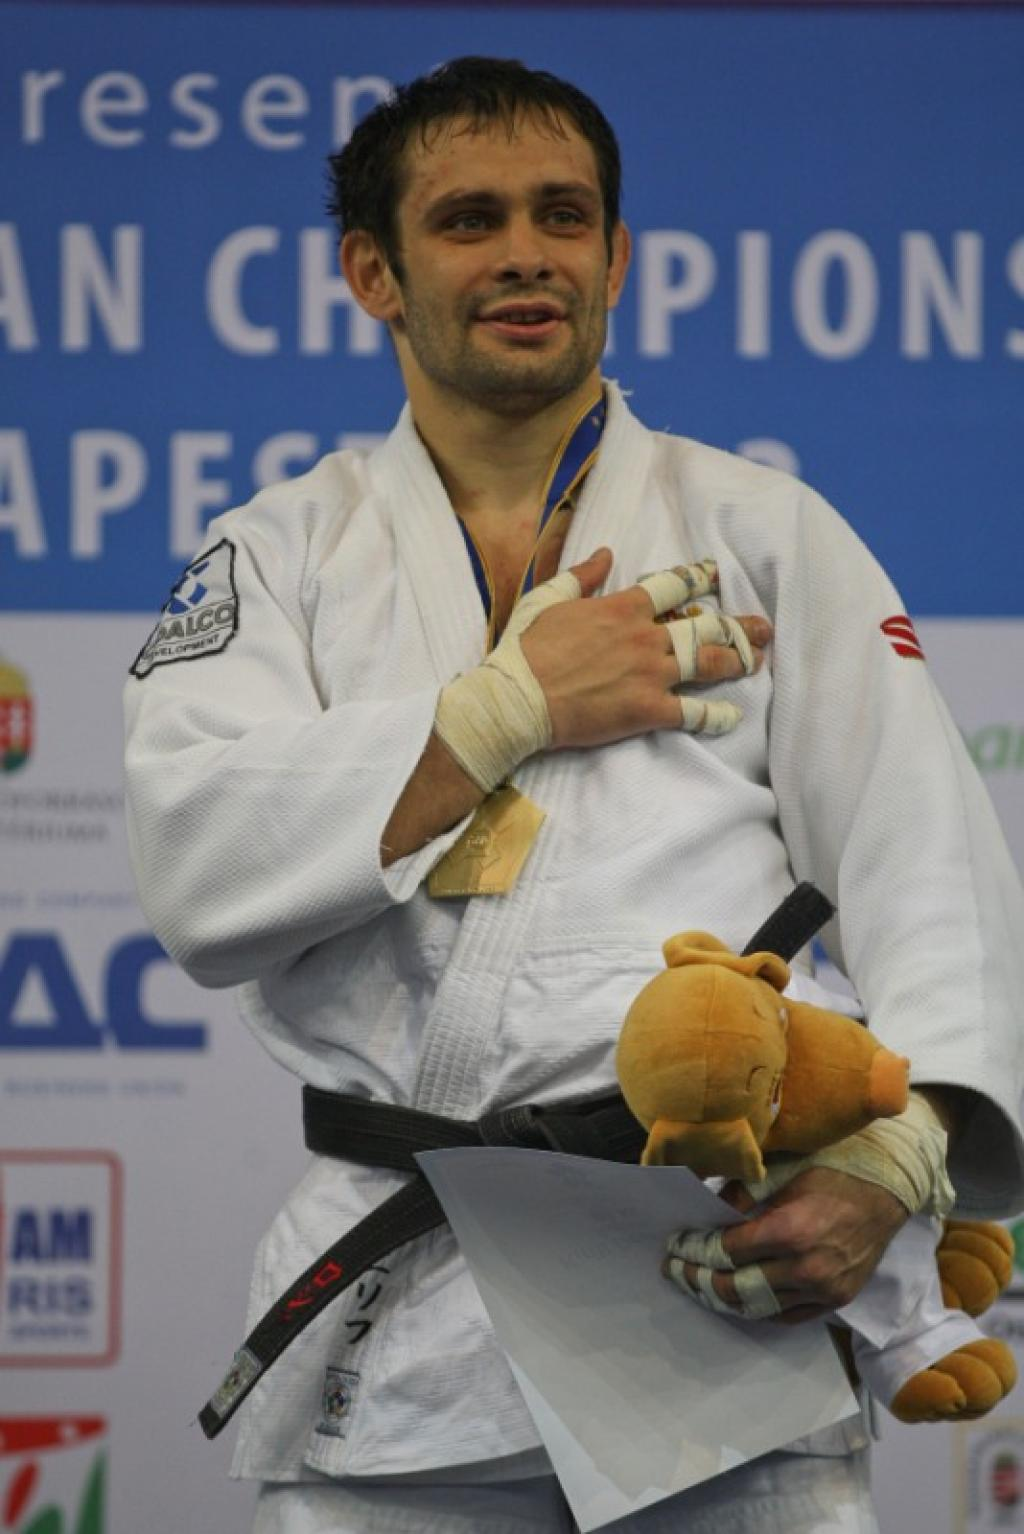 Denisov shows he win finals and takes European gold medal